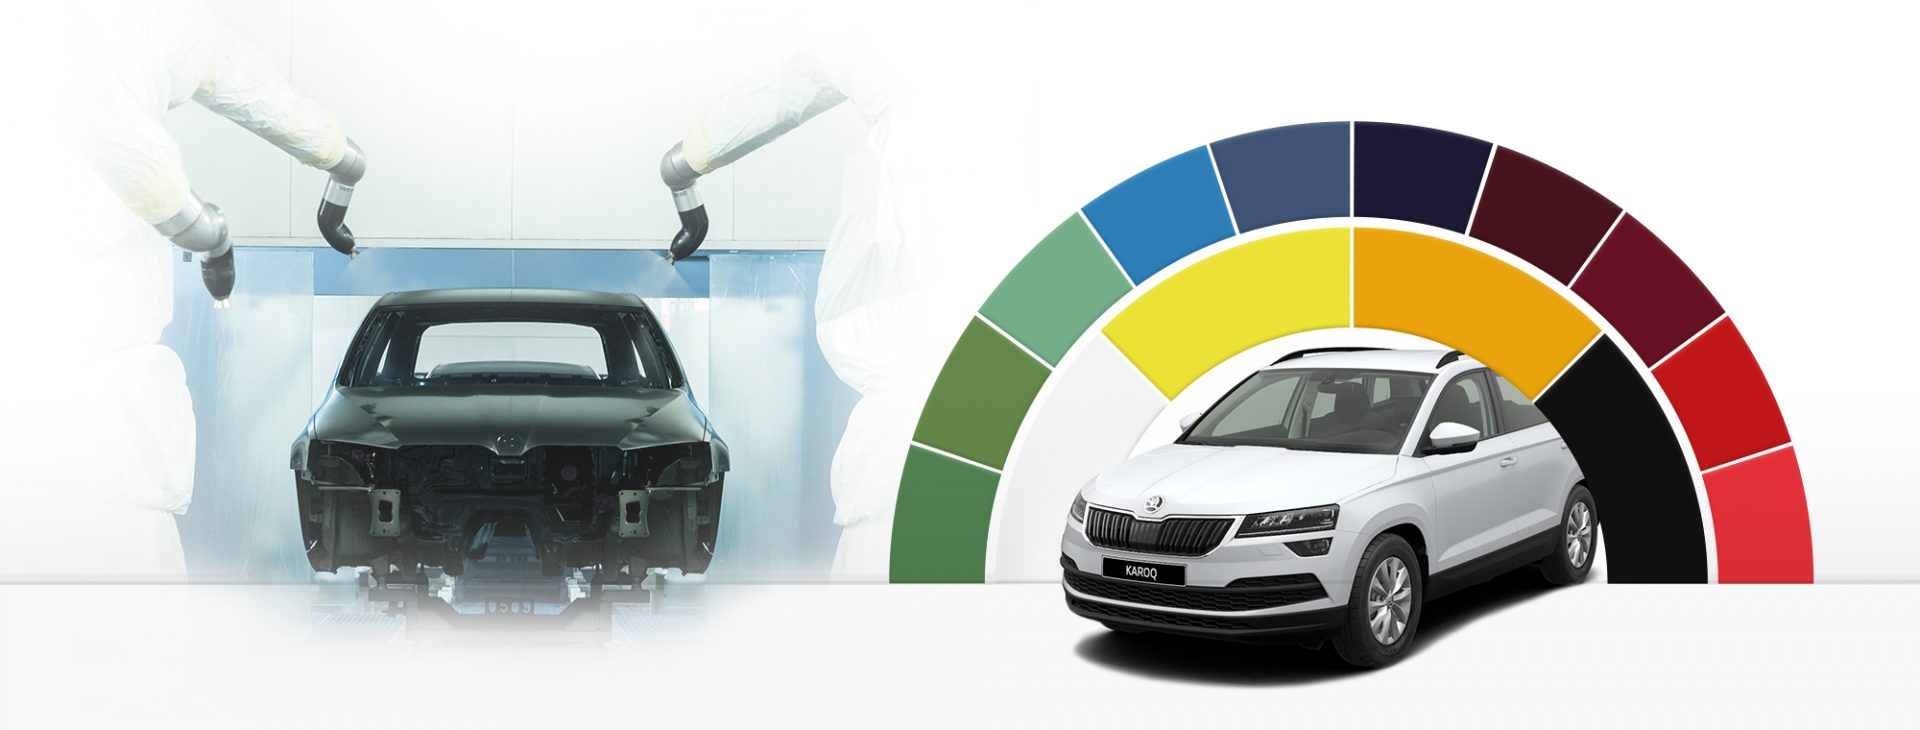 What S Behind A Car S Colour Skoda Storyboard